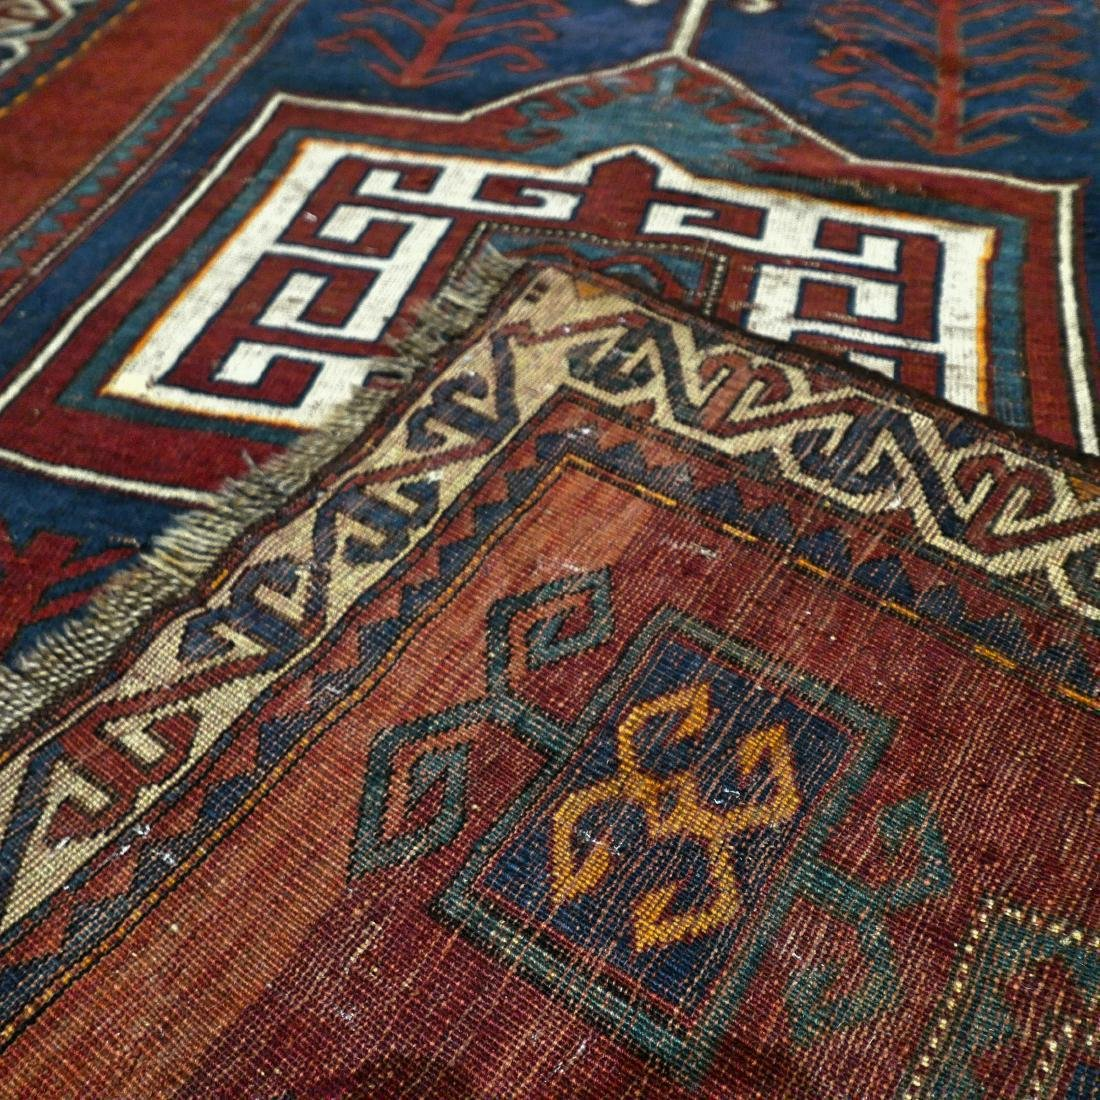 6.6 x 4.6 Caucasian Kazak rug - early 1900s - - 3